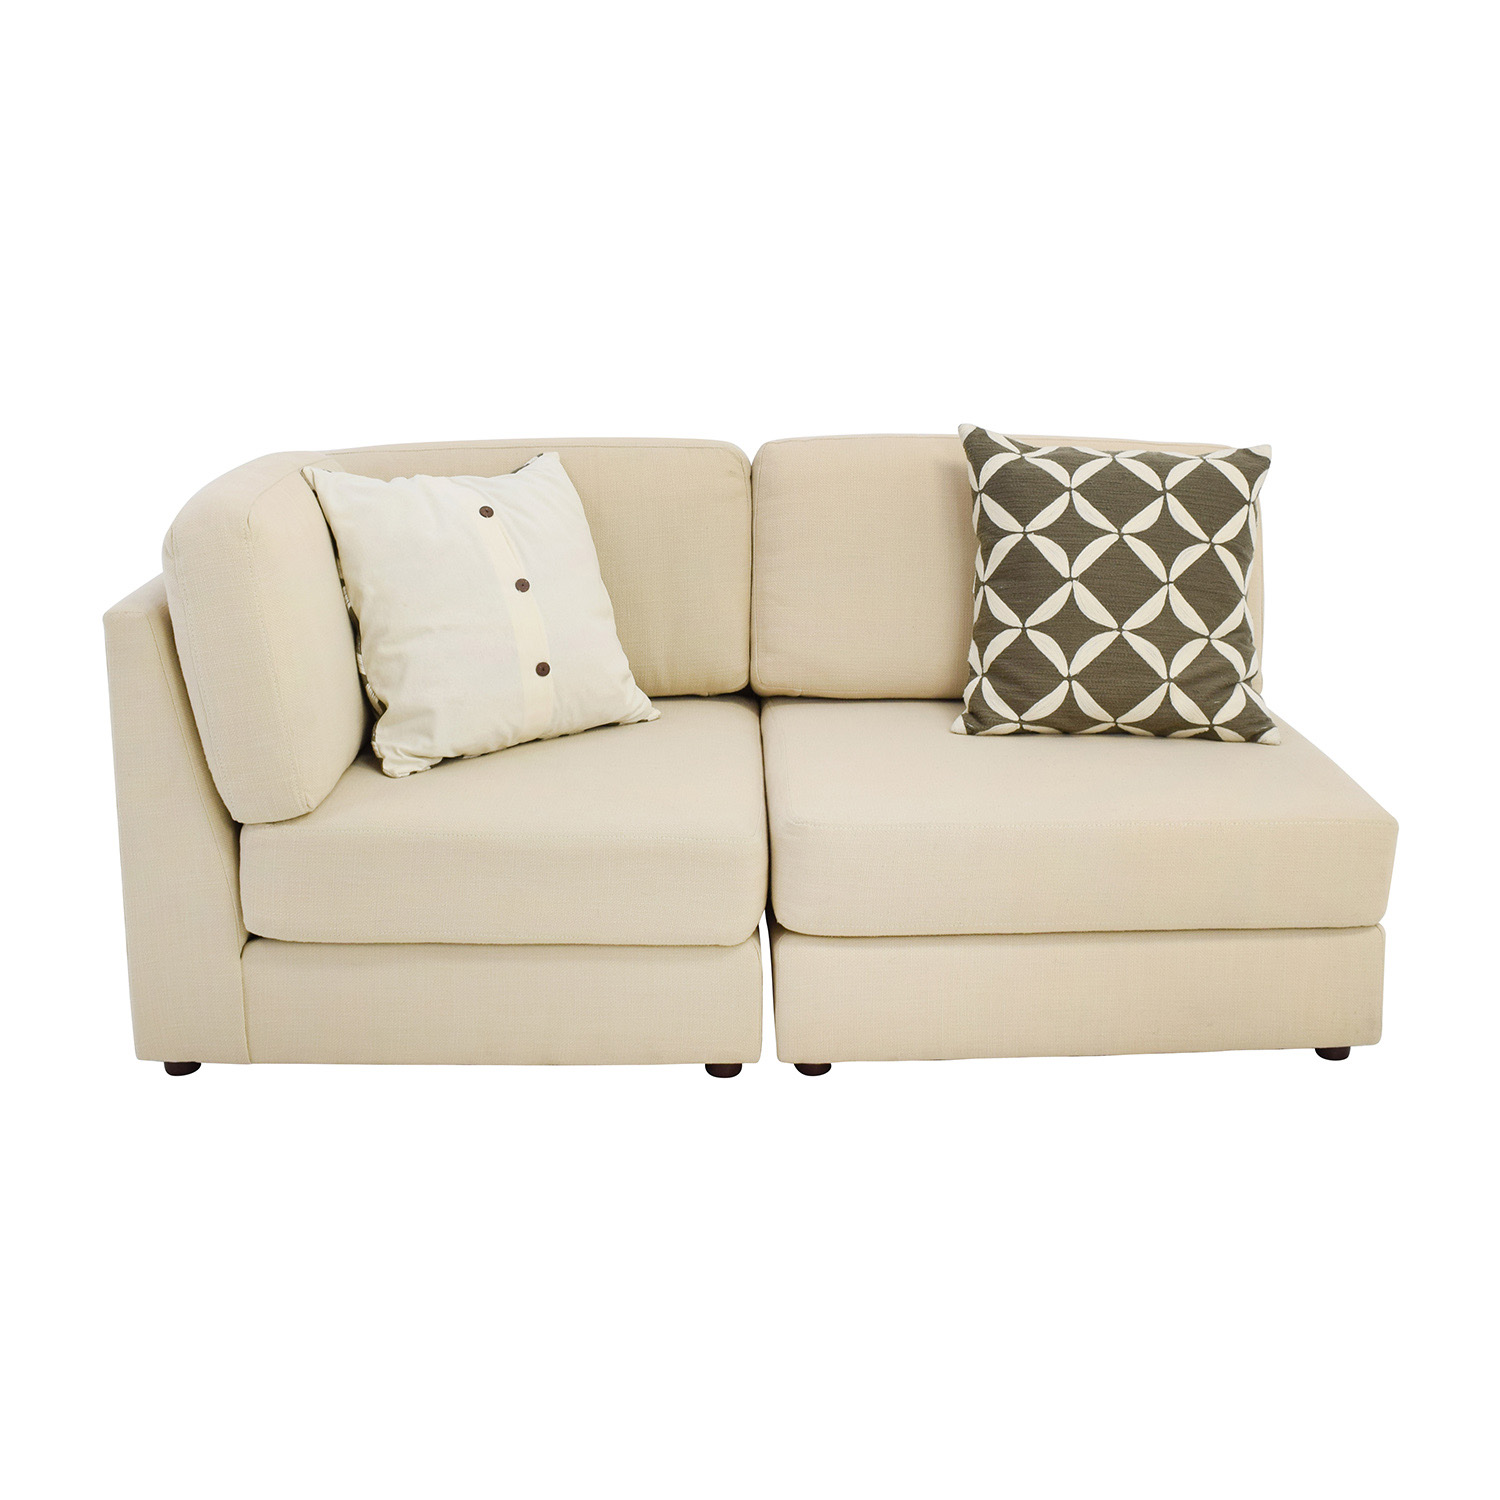 West Elm West Elm Cream Chaise Sofa or Two Chairs Sofas